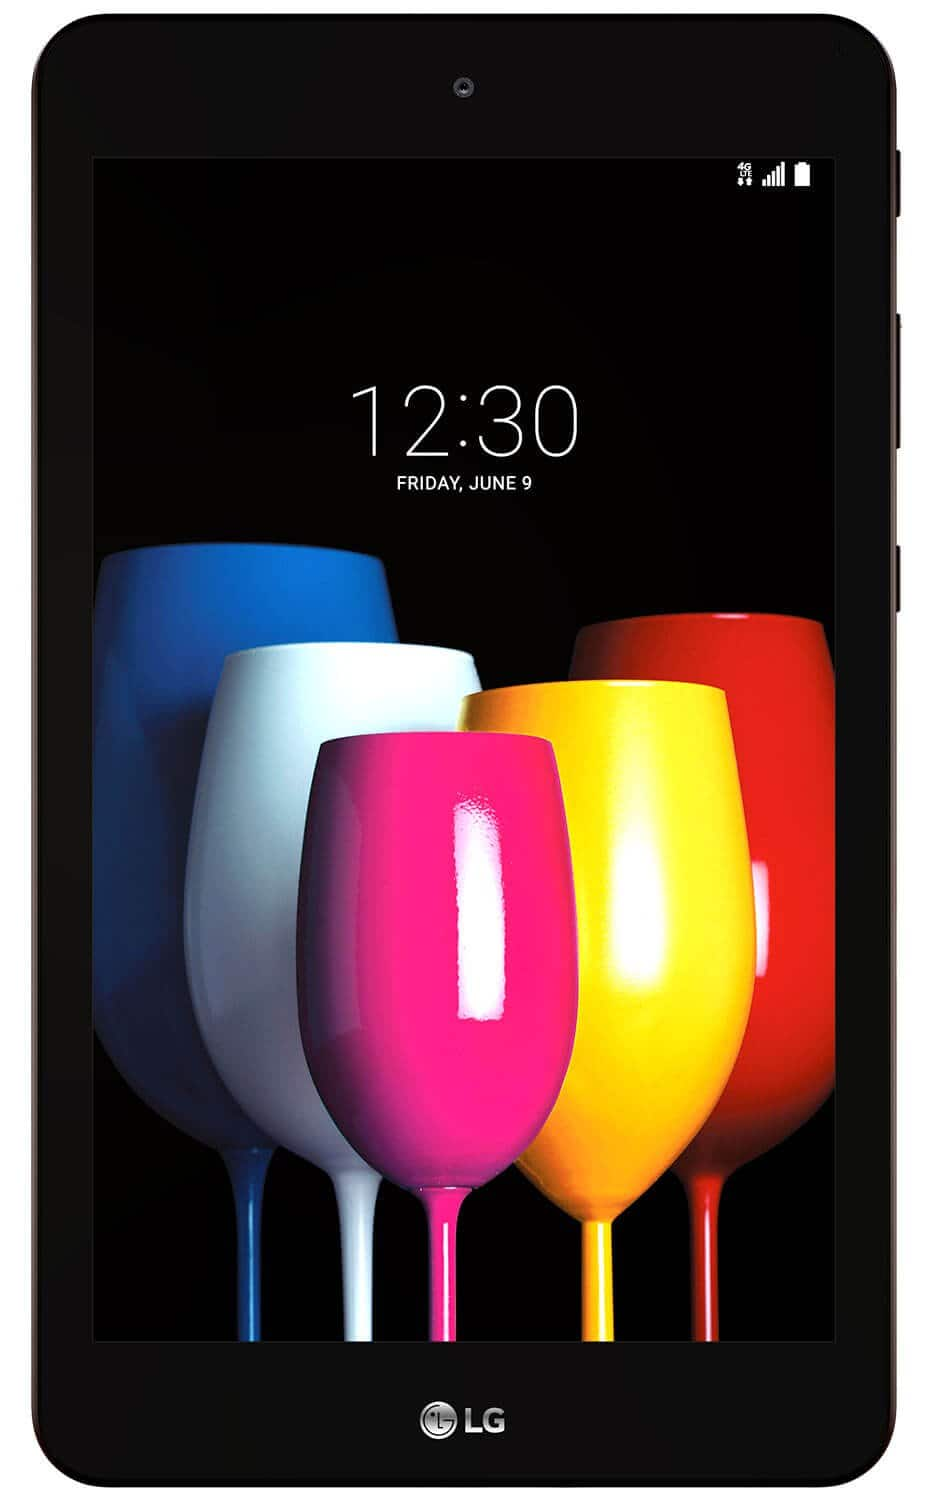 LG G Pad X2 8.0 Plus (V530) $99 for T-Mobile customers after bill credits